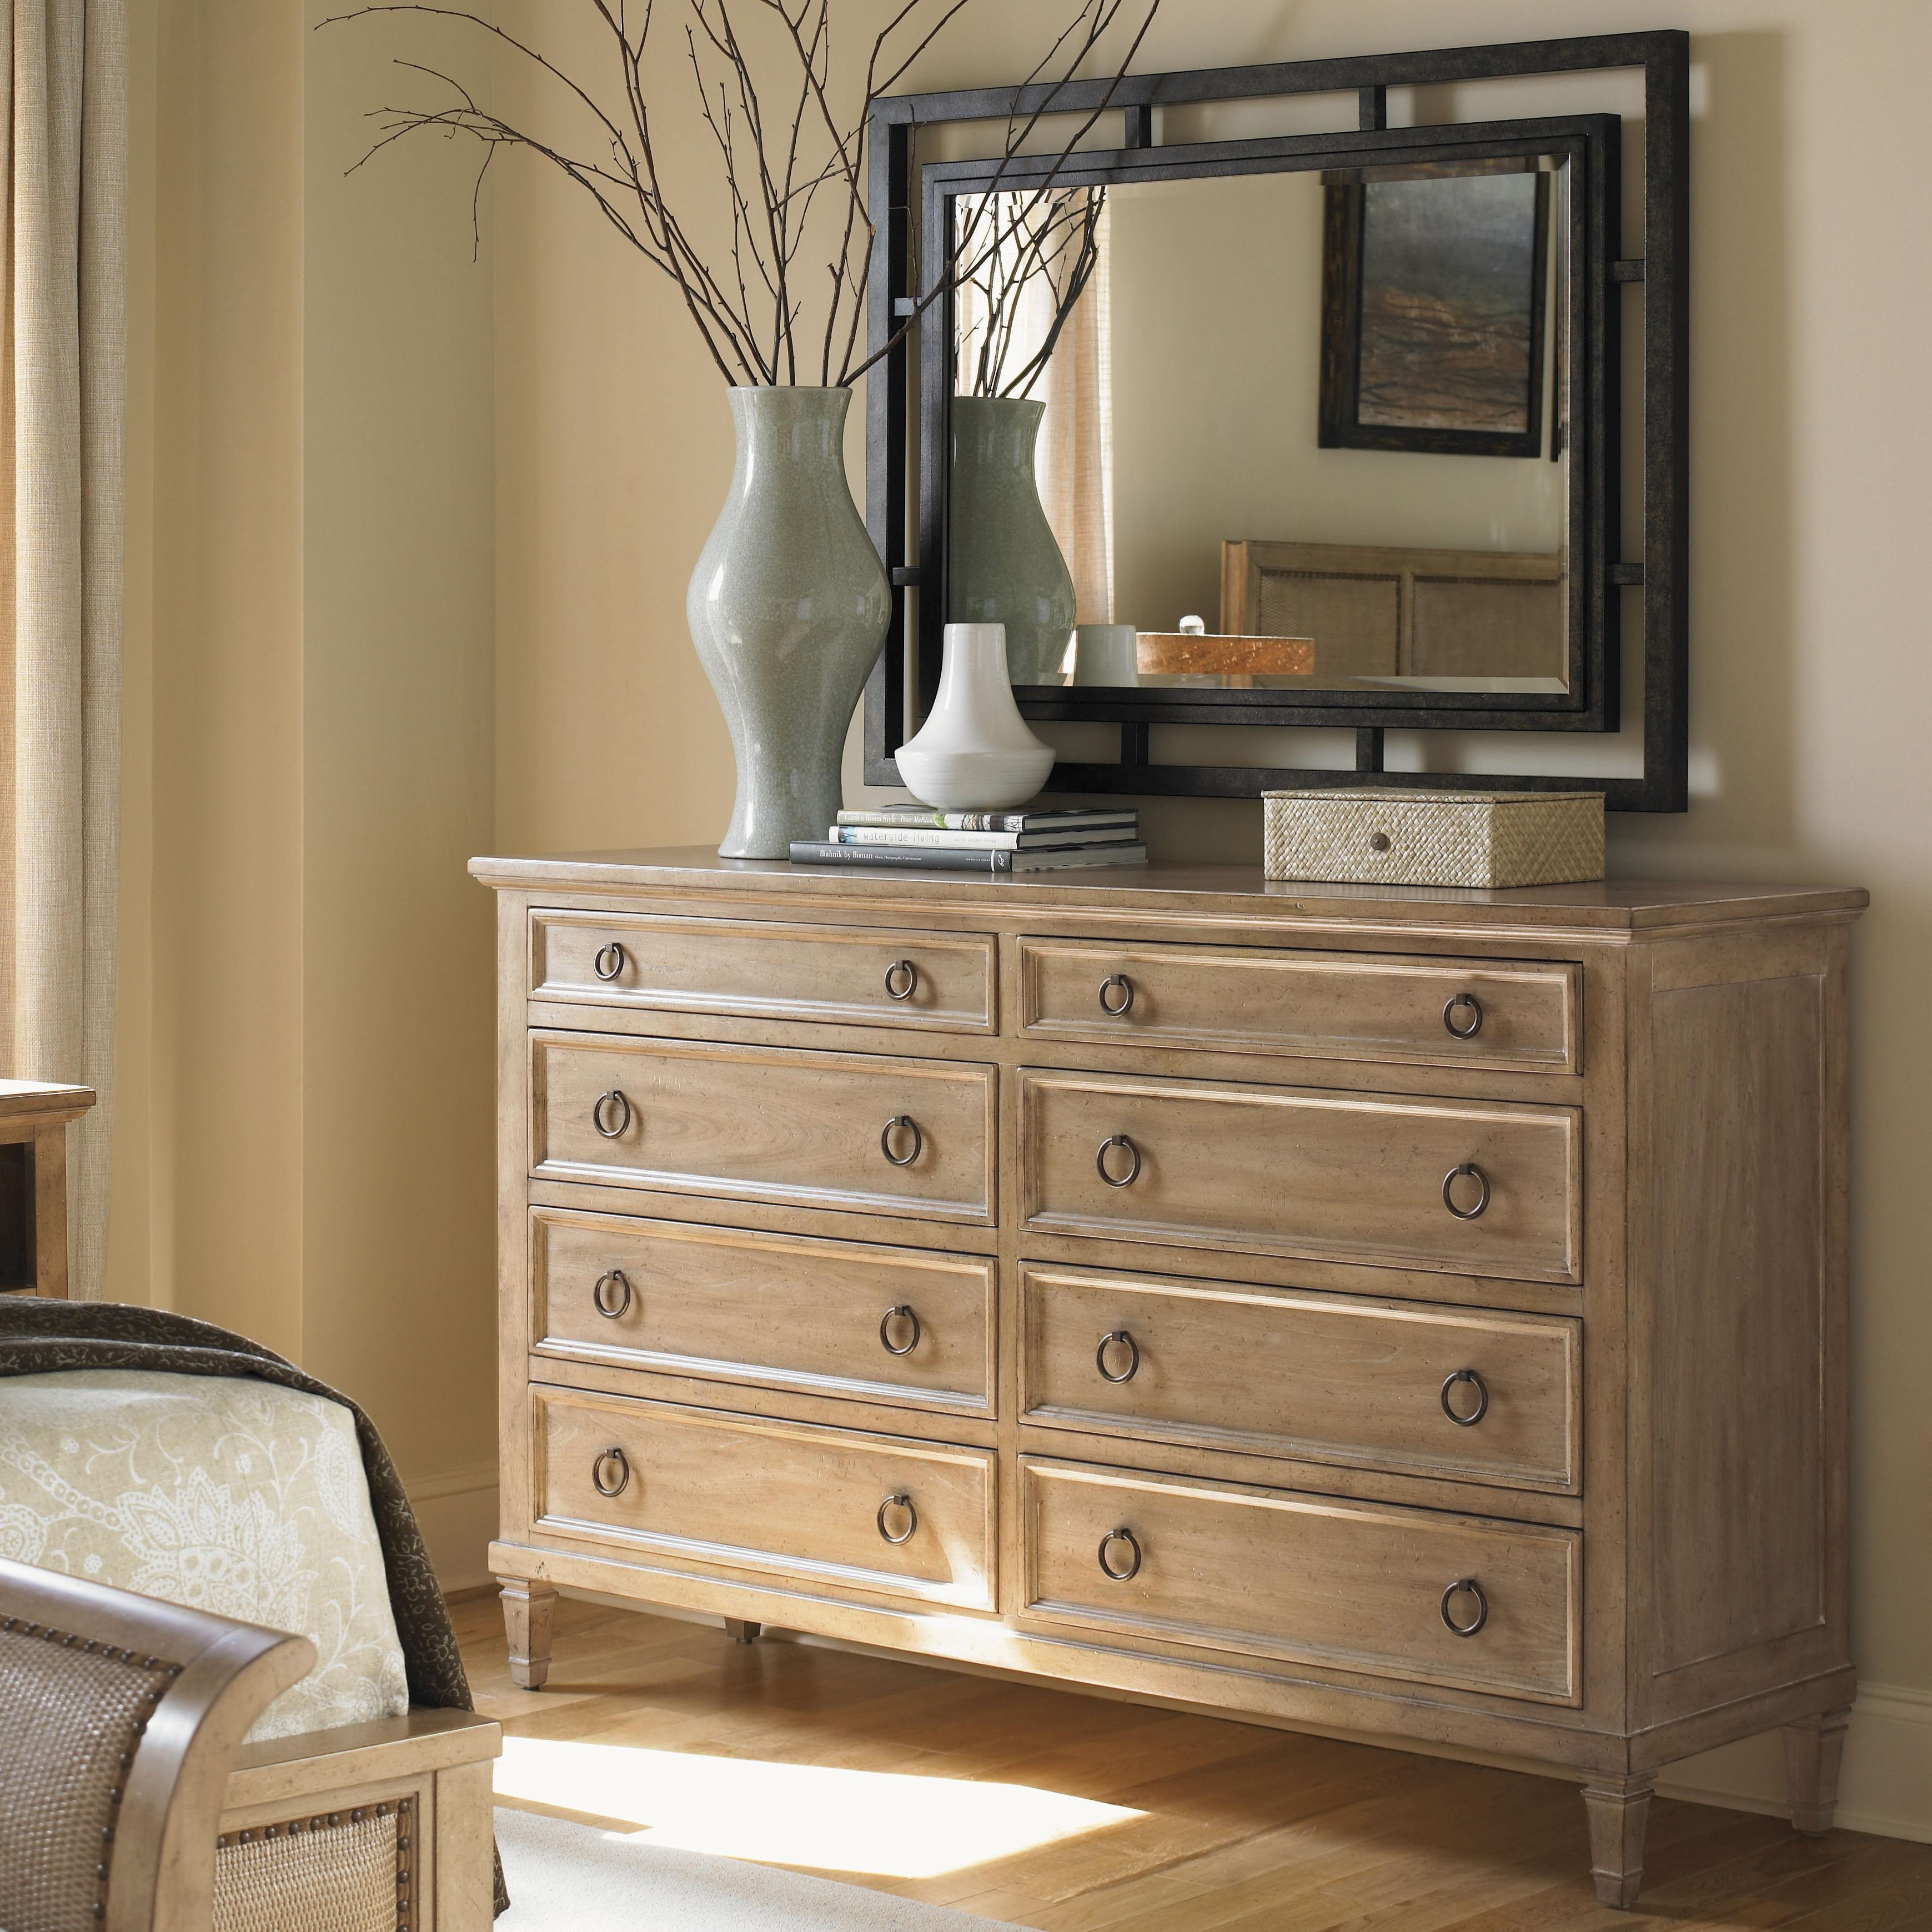 Lexington Monterey Sands Hollister Dresser & Salinas Mirror - Item Number: 830-222+205